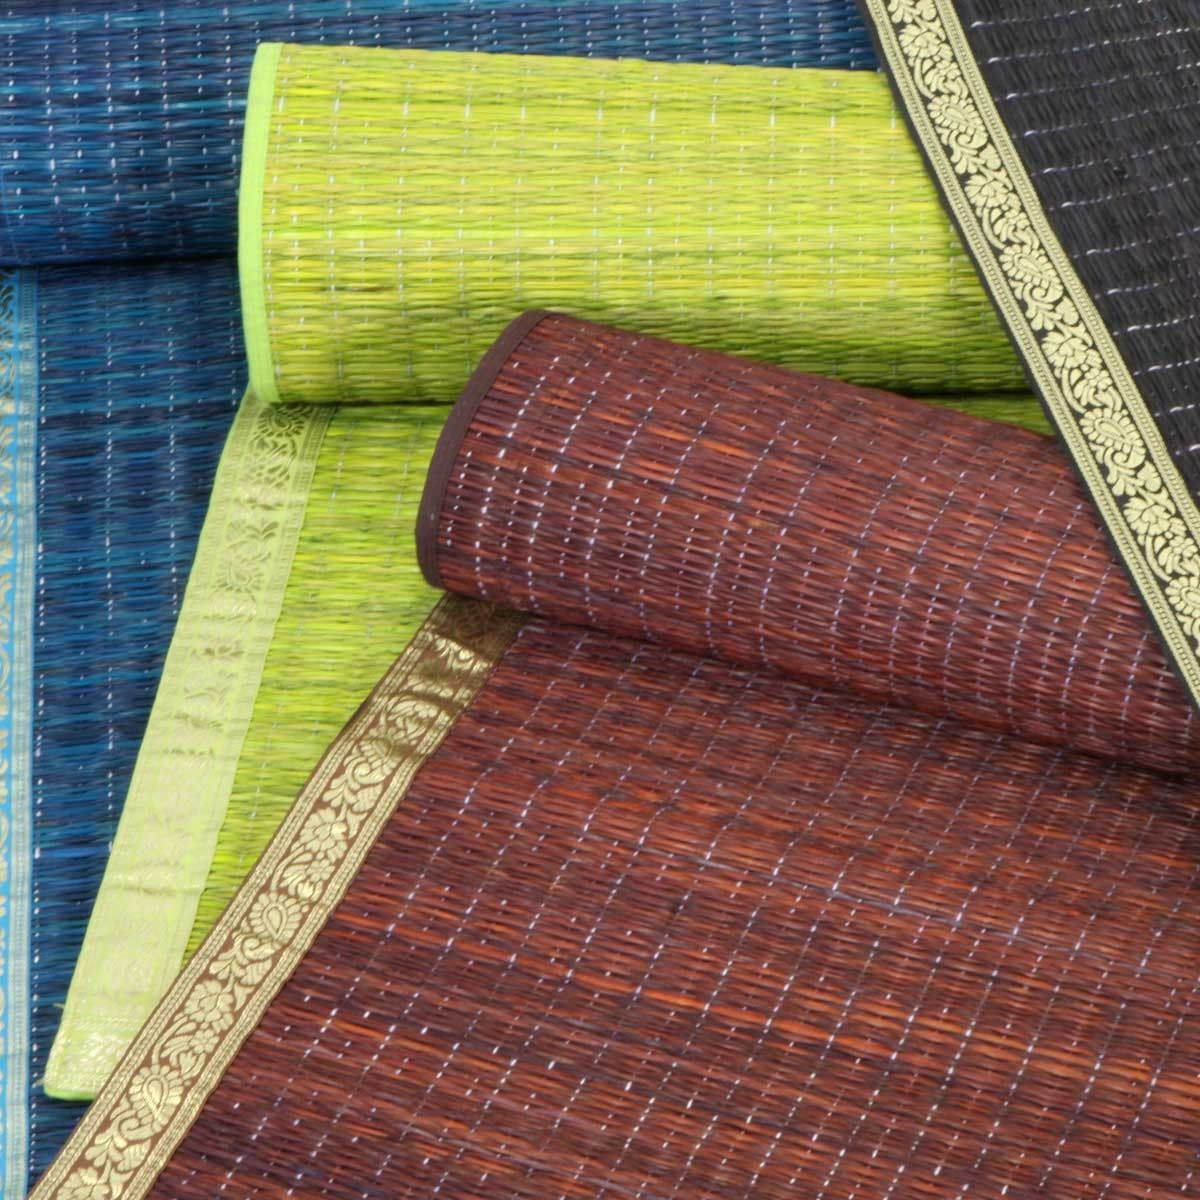 Floor mats manufacturers india - A Unique Offering From South India These Beautiful Floor Mats Made Of Sea Grass Are